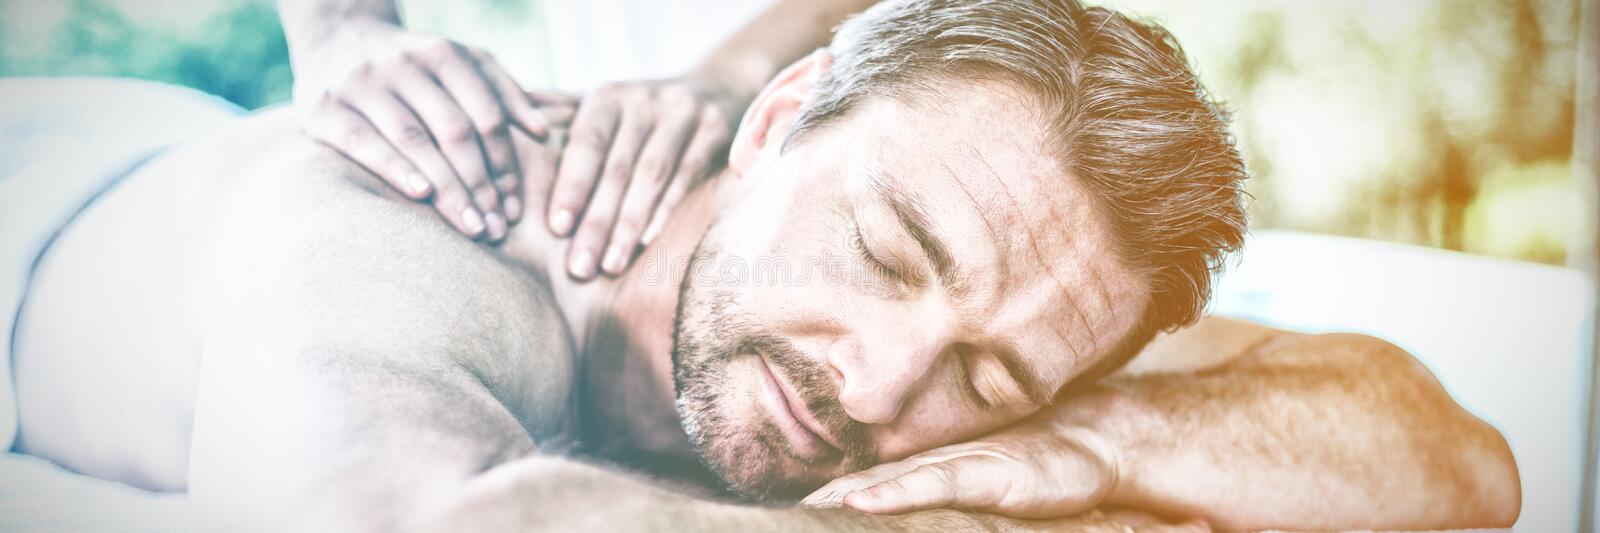 Man receiving back massage from masseur royalty free stock image